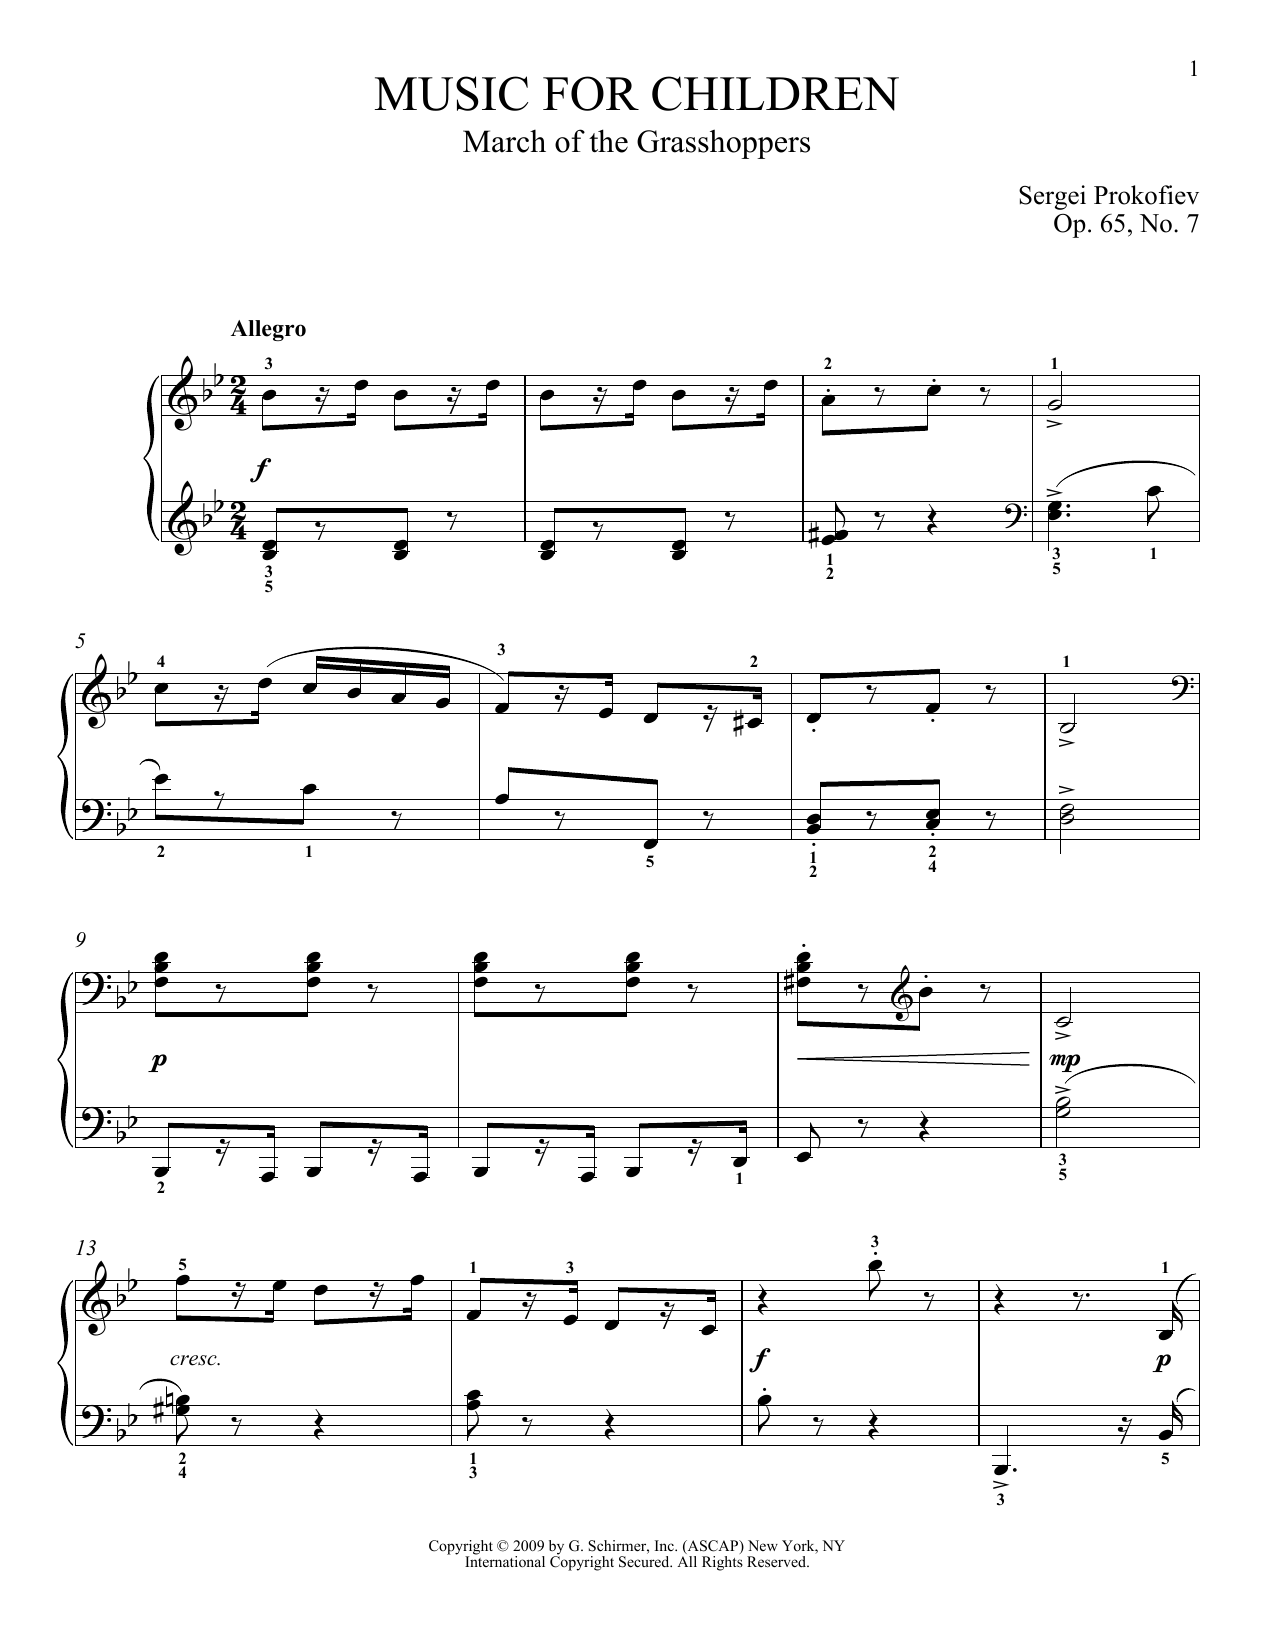 Sergei Prokofiev March Of The Grasshoppers sheet music notes and chords